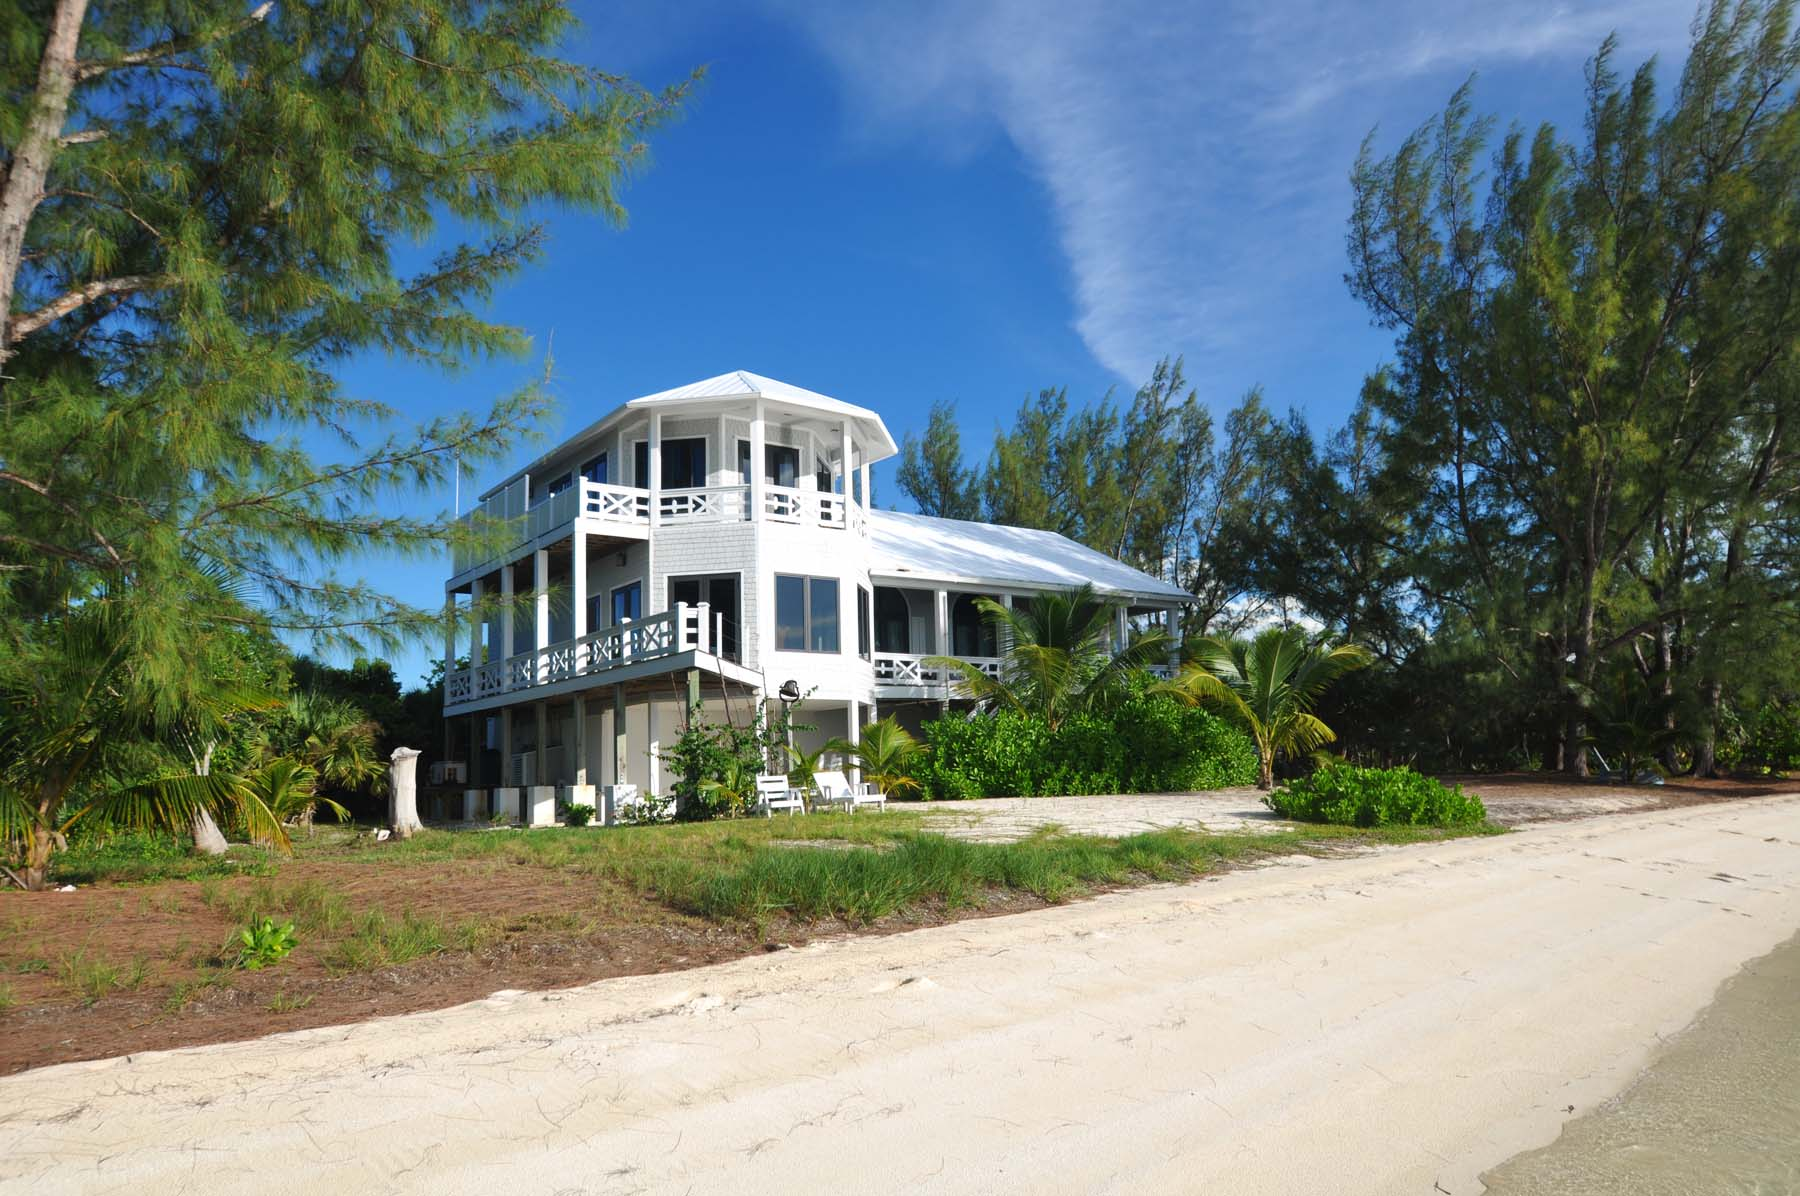 Single Family Home for Sale at Creme De La Coco Green Turtle Cay, Abaco Bahamas